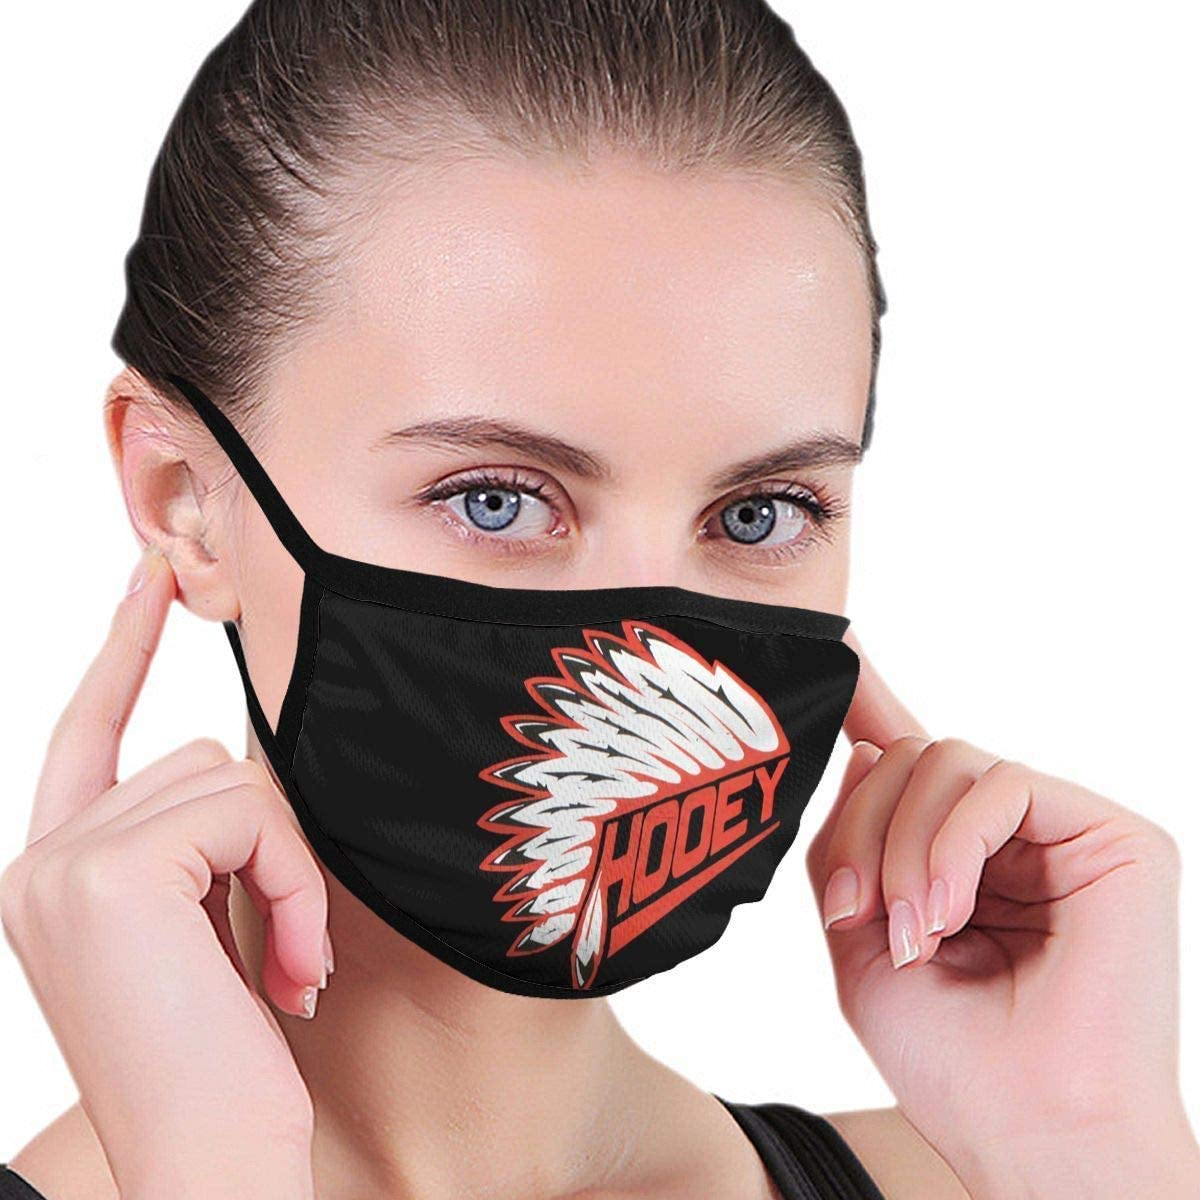 Decorative Mouth Masque Cover Face,Facial Scarf,Face Guard Cover,Hooey Cowboy Red with Headdress Logo Outdoor Windproof Sports Ski Shield Scarf Bandana Men Woman